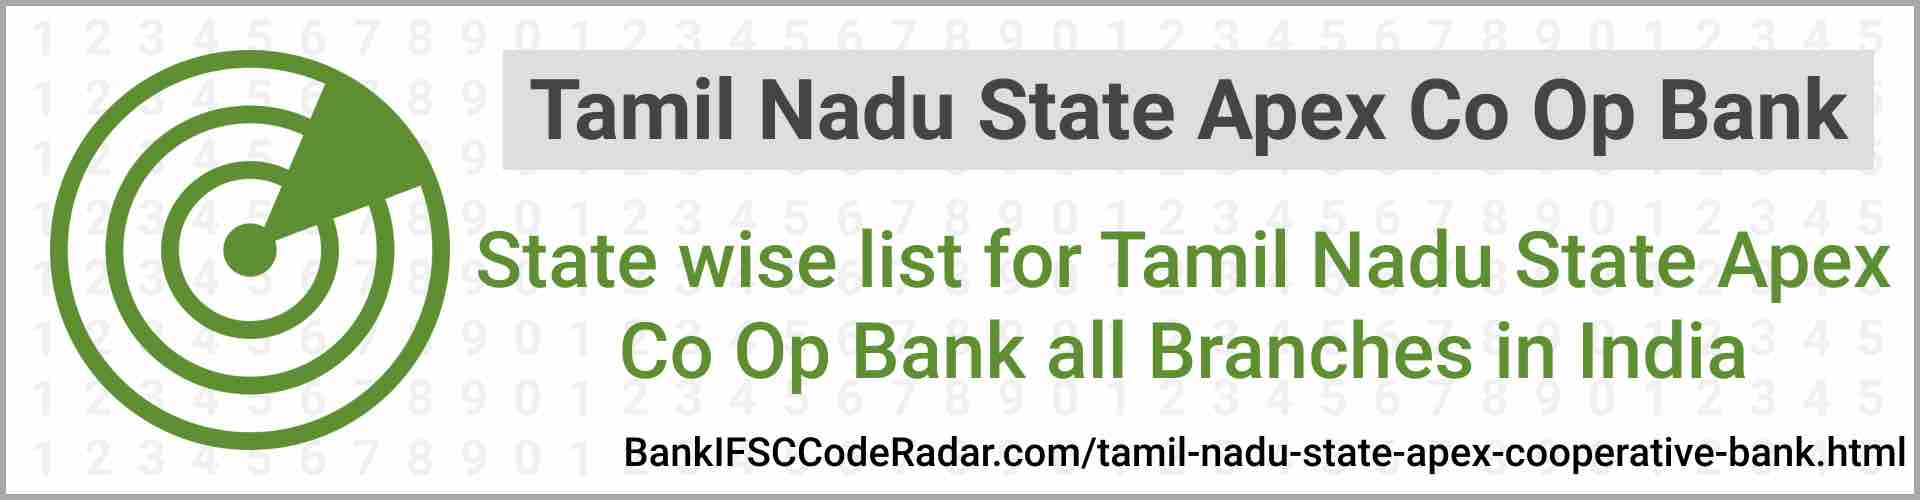 Tamil Nadu State Apex Cooperative Bank All Branches India